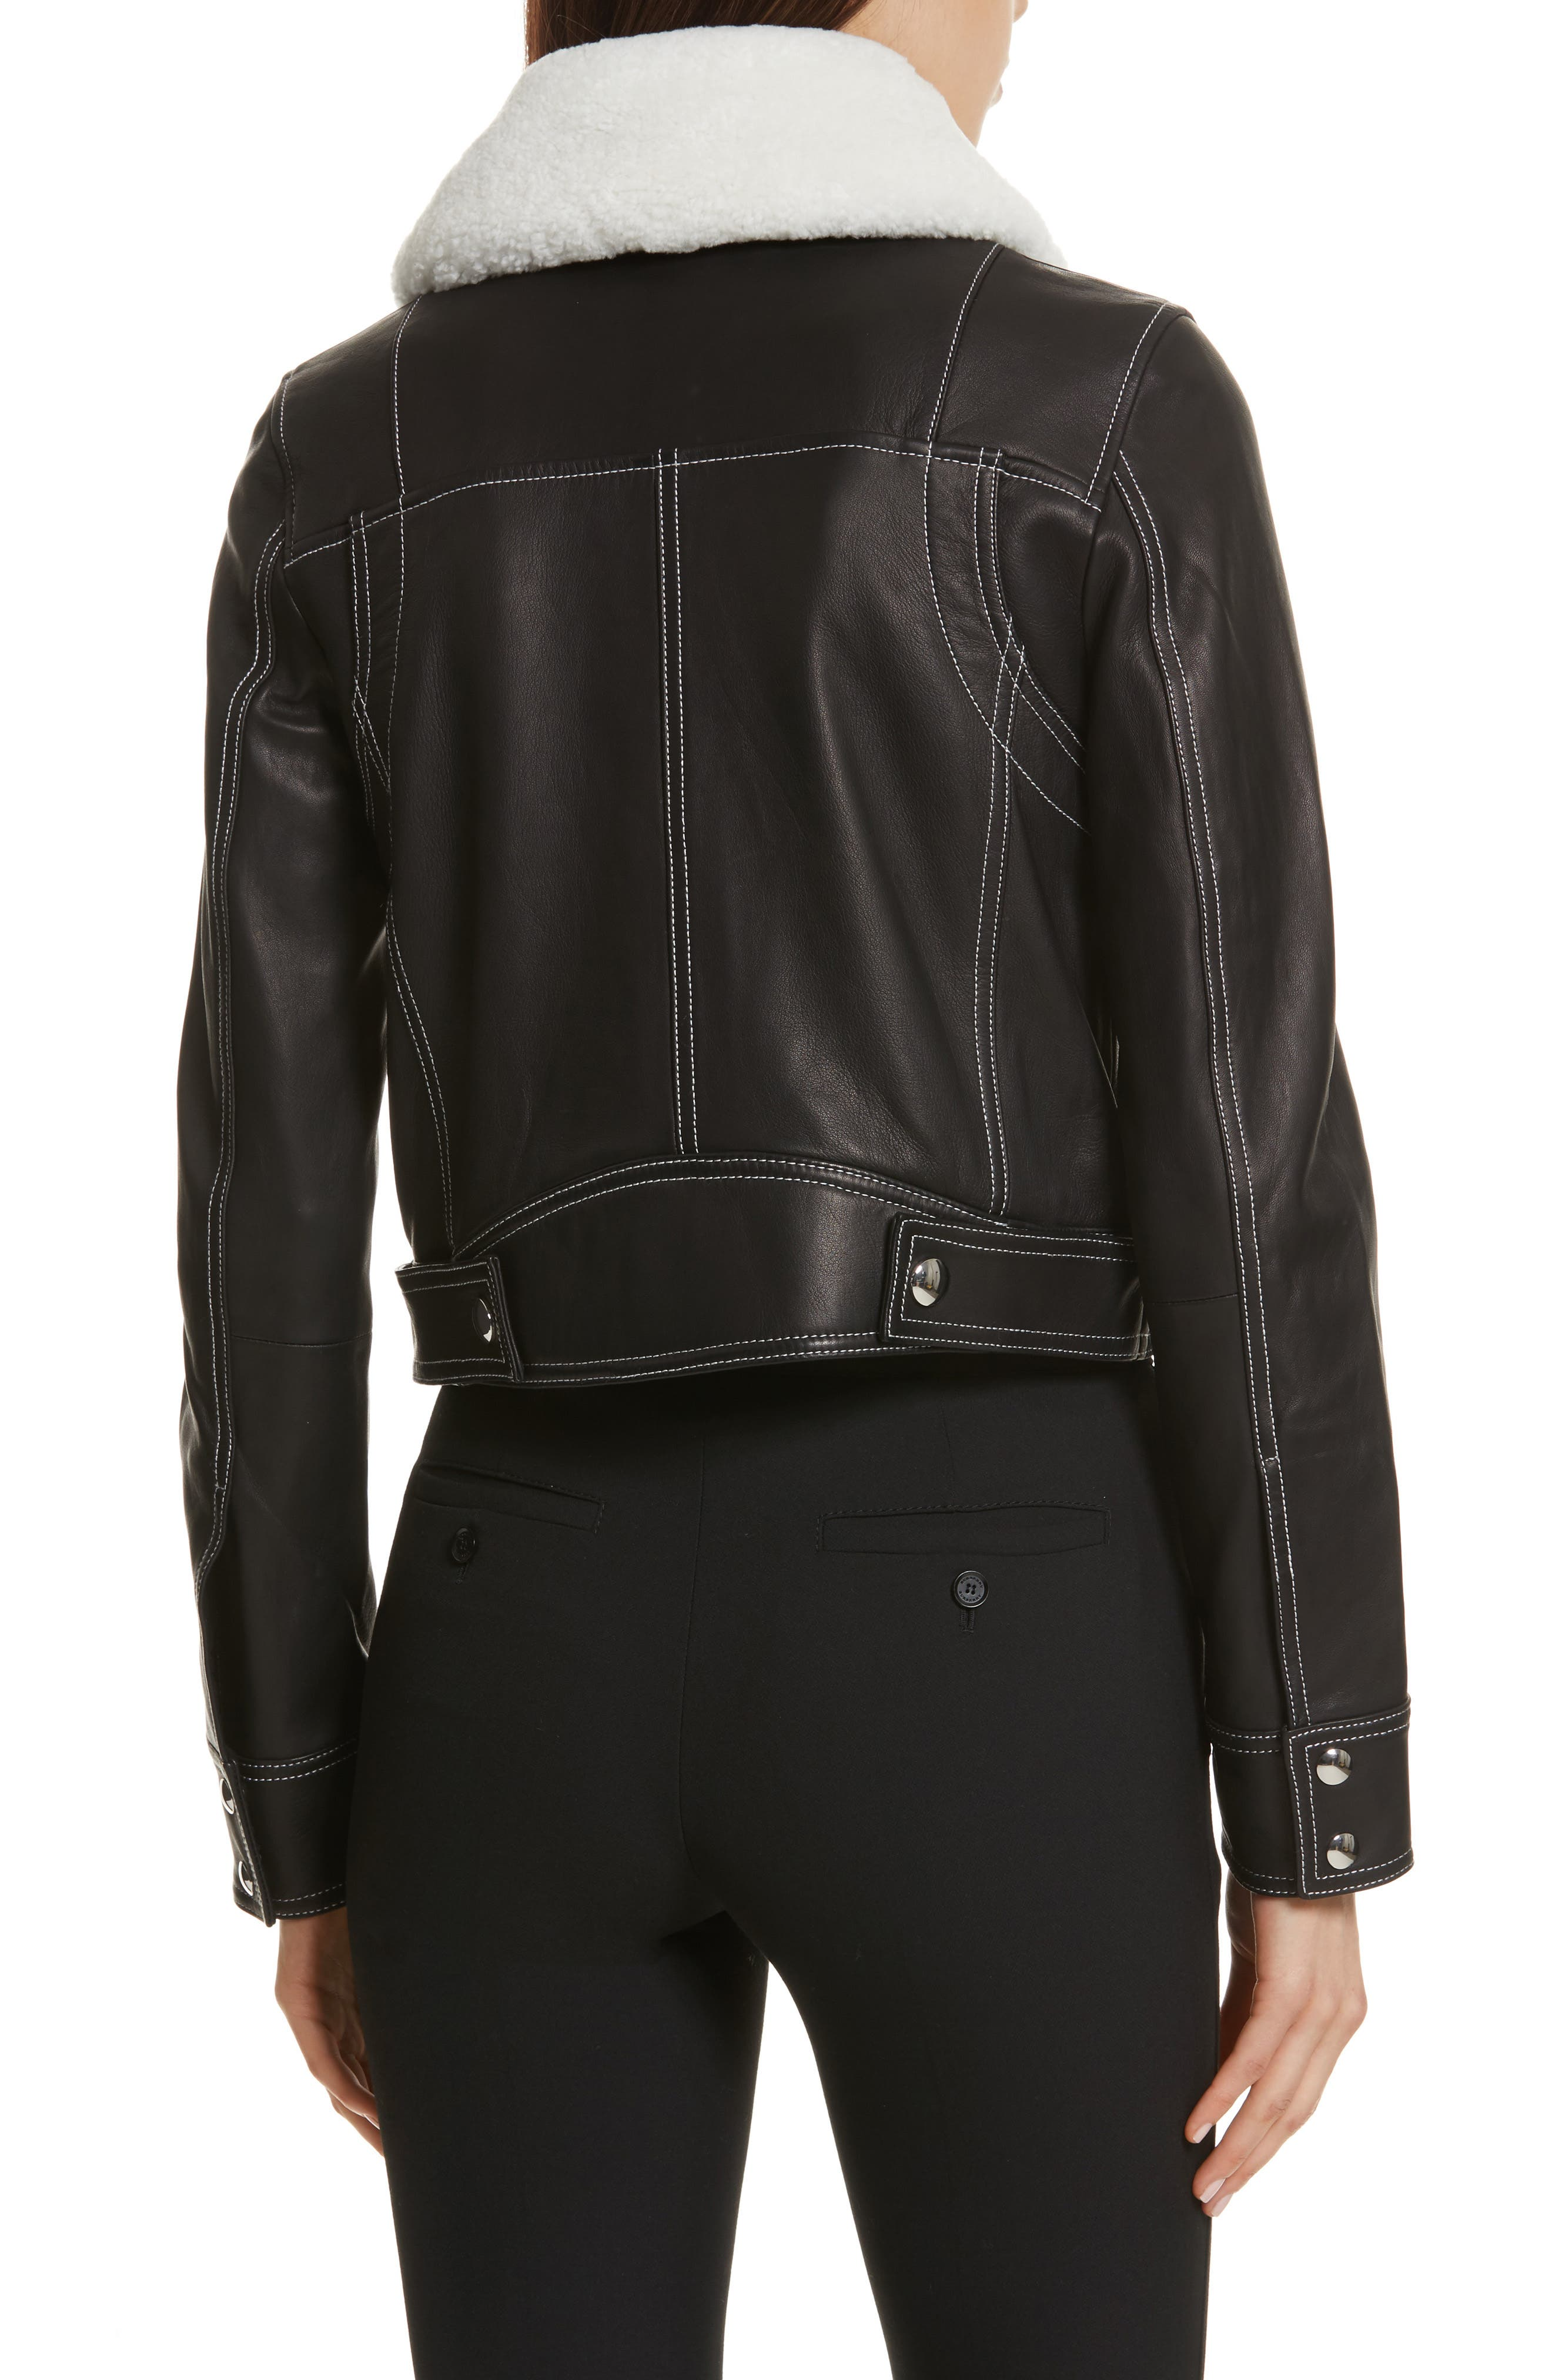 GREY Jason Wu Shrunken Leather Jacket with Removable Genuine Shearling Collar,                             Alternate thumbnail 2, color,                             009